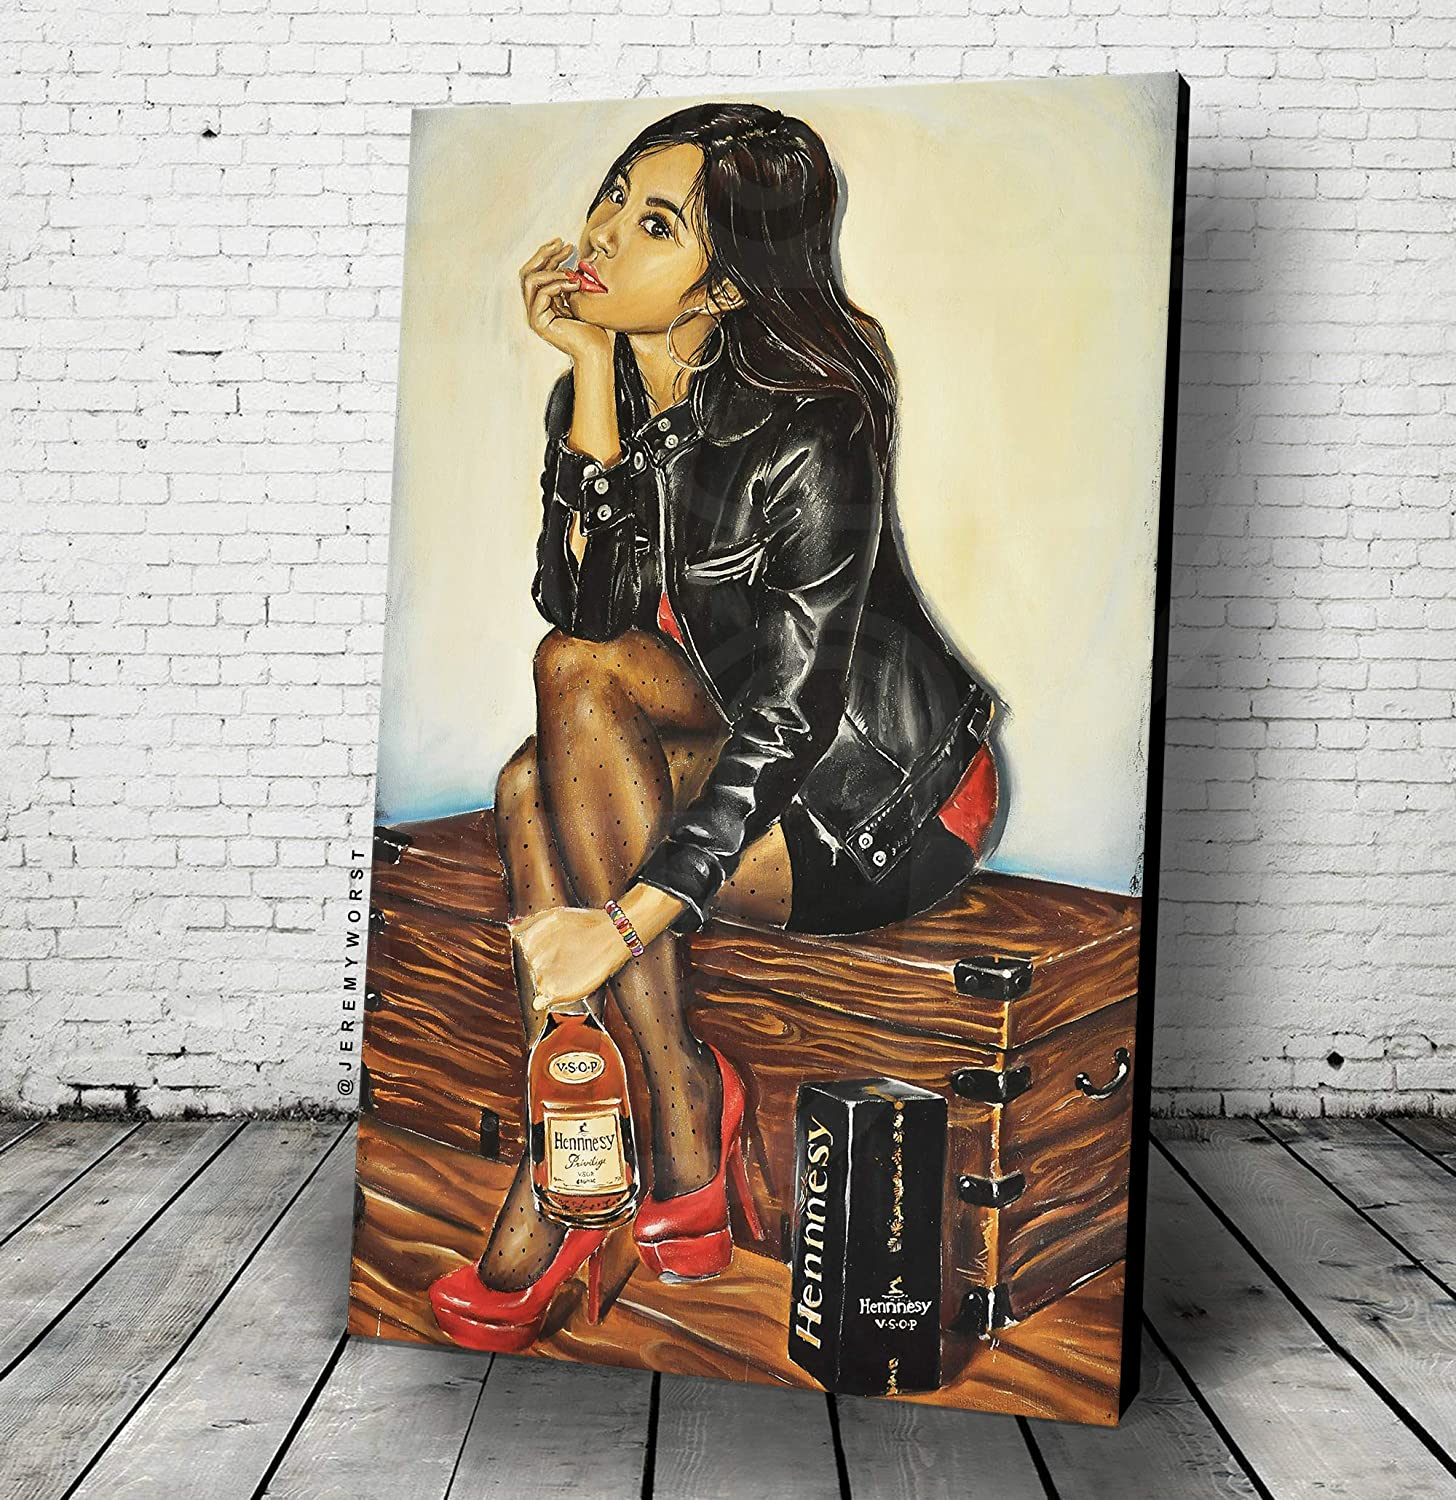 JEREMY WORST V S O P Hennyy Wall Art Poster or Canvas | Arcade Bar Game Room Club Living Room Gifts | Print Ready Strong Fearless Sign collectible Clock | American Beer Acrylic Painting